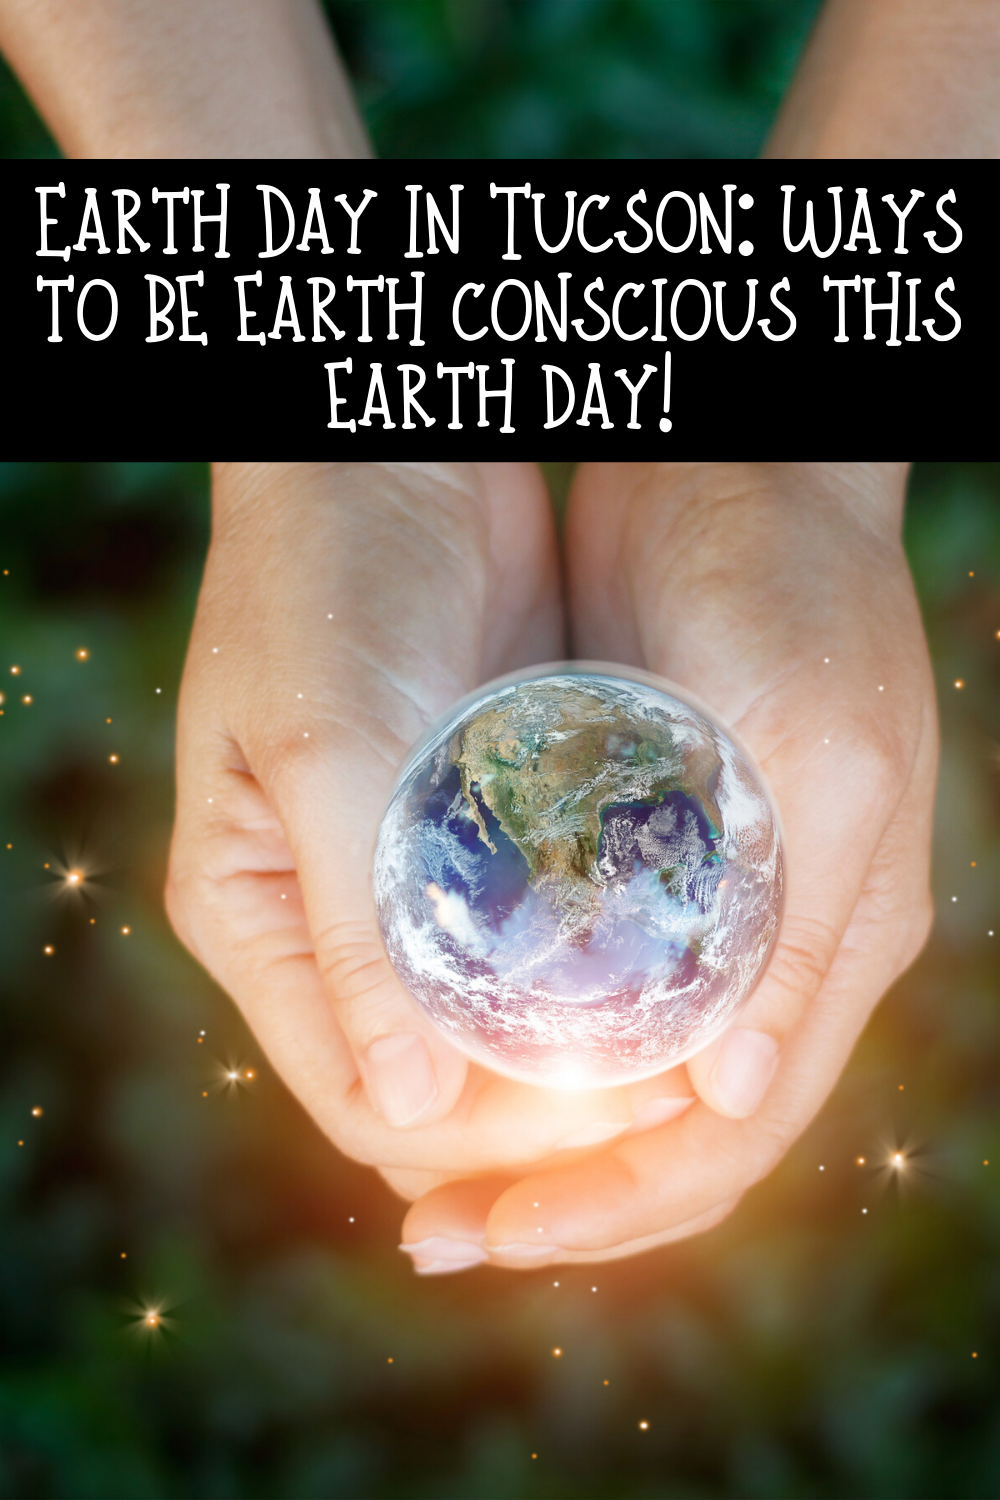 Did you know that Earth Day in Tucson is just around the corner? If you can't get out and volunteer in Tucson this Earth Day, fear not. We're bringing you a list of five things you can do at home that will make a big impact on the earth and your footprint here.